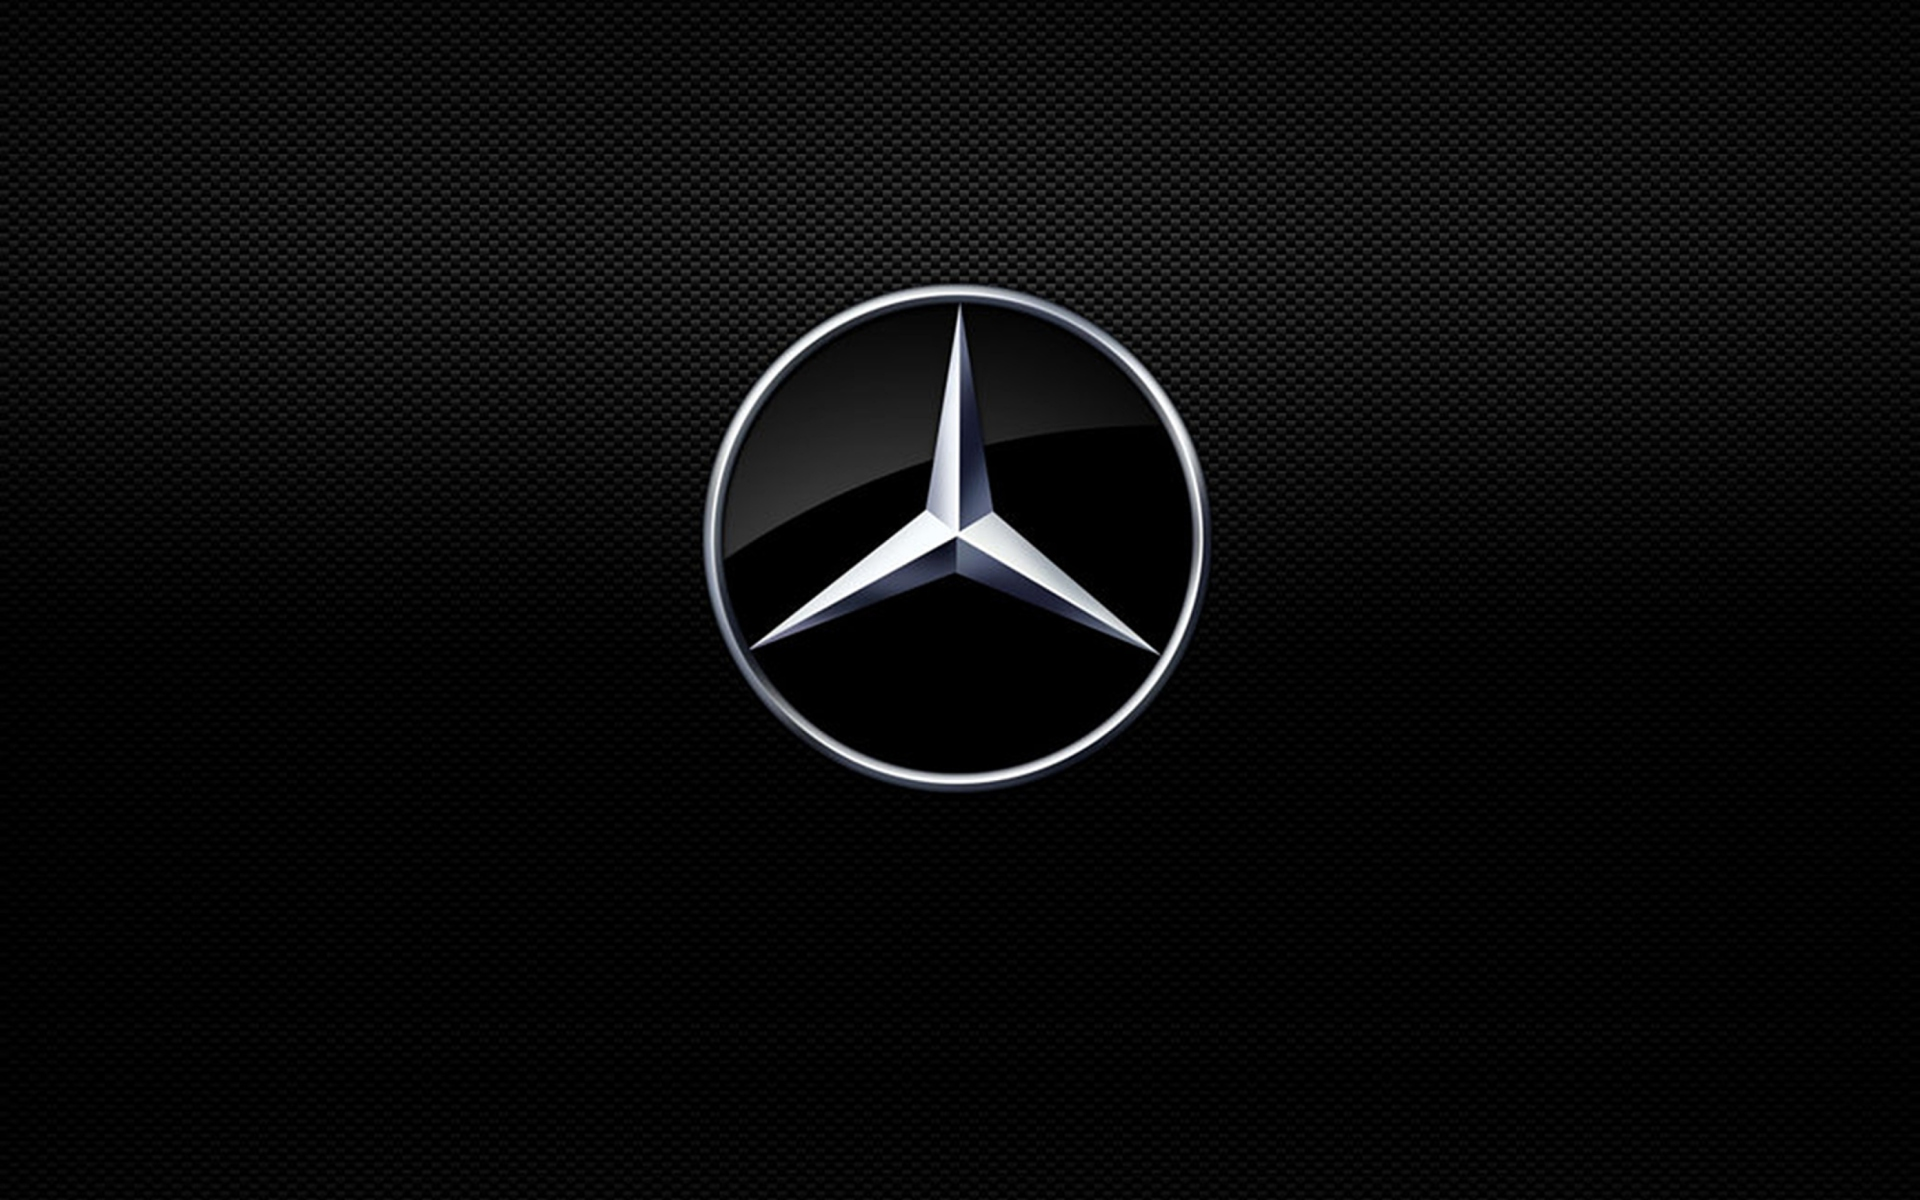 mercedes benz logo wallpapers  pictures  images hd logos wallpaper hd logos wallpapers